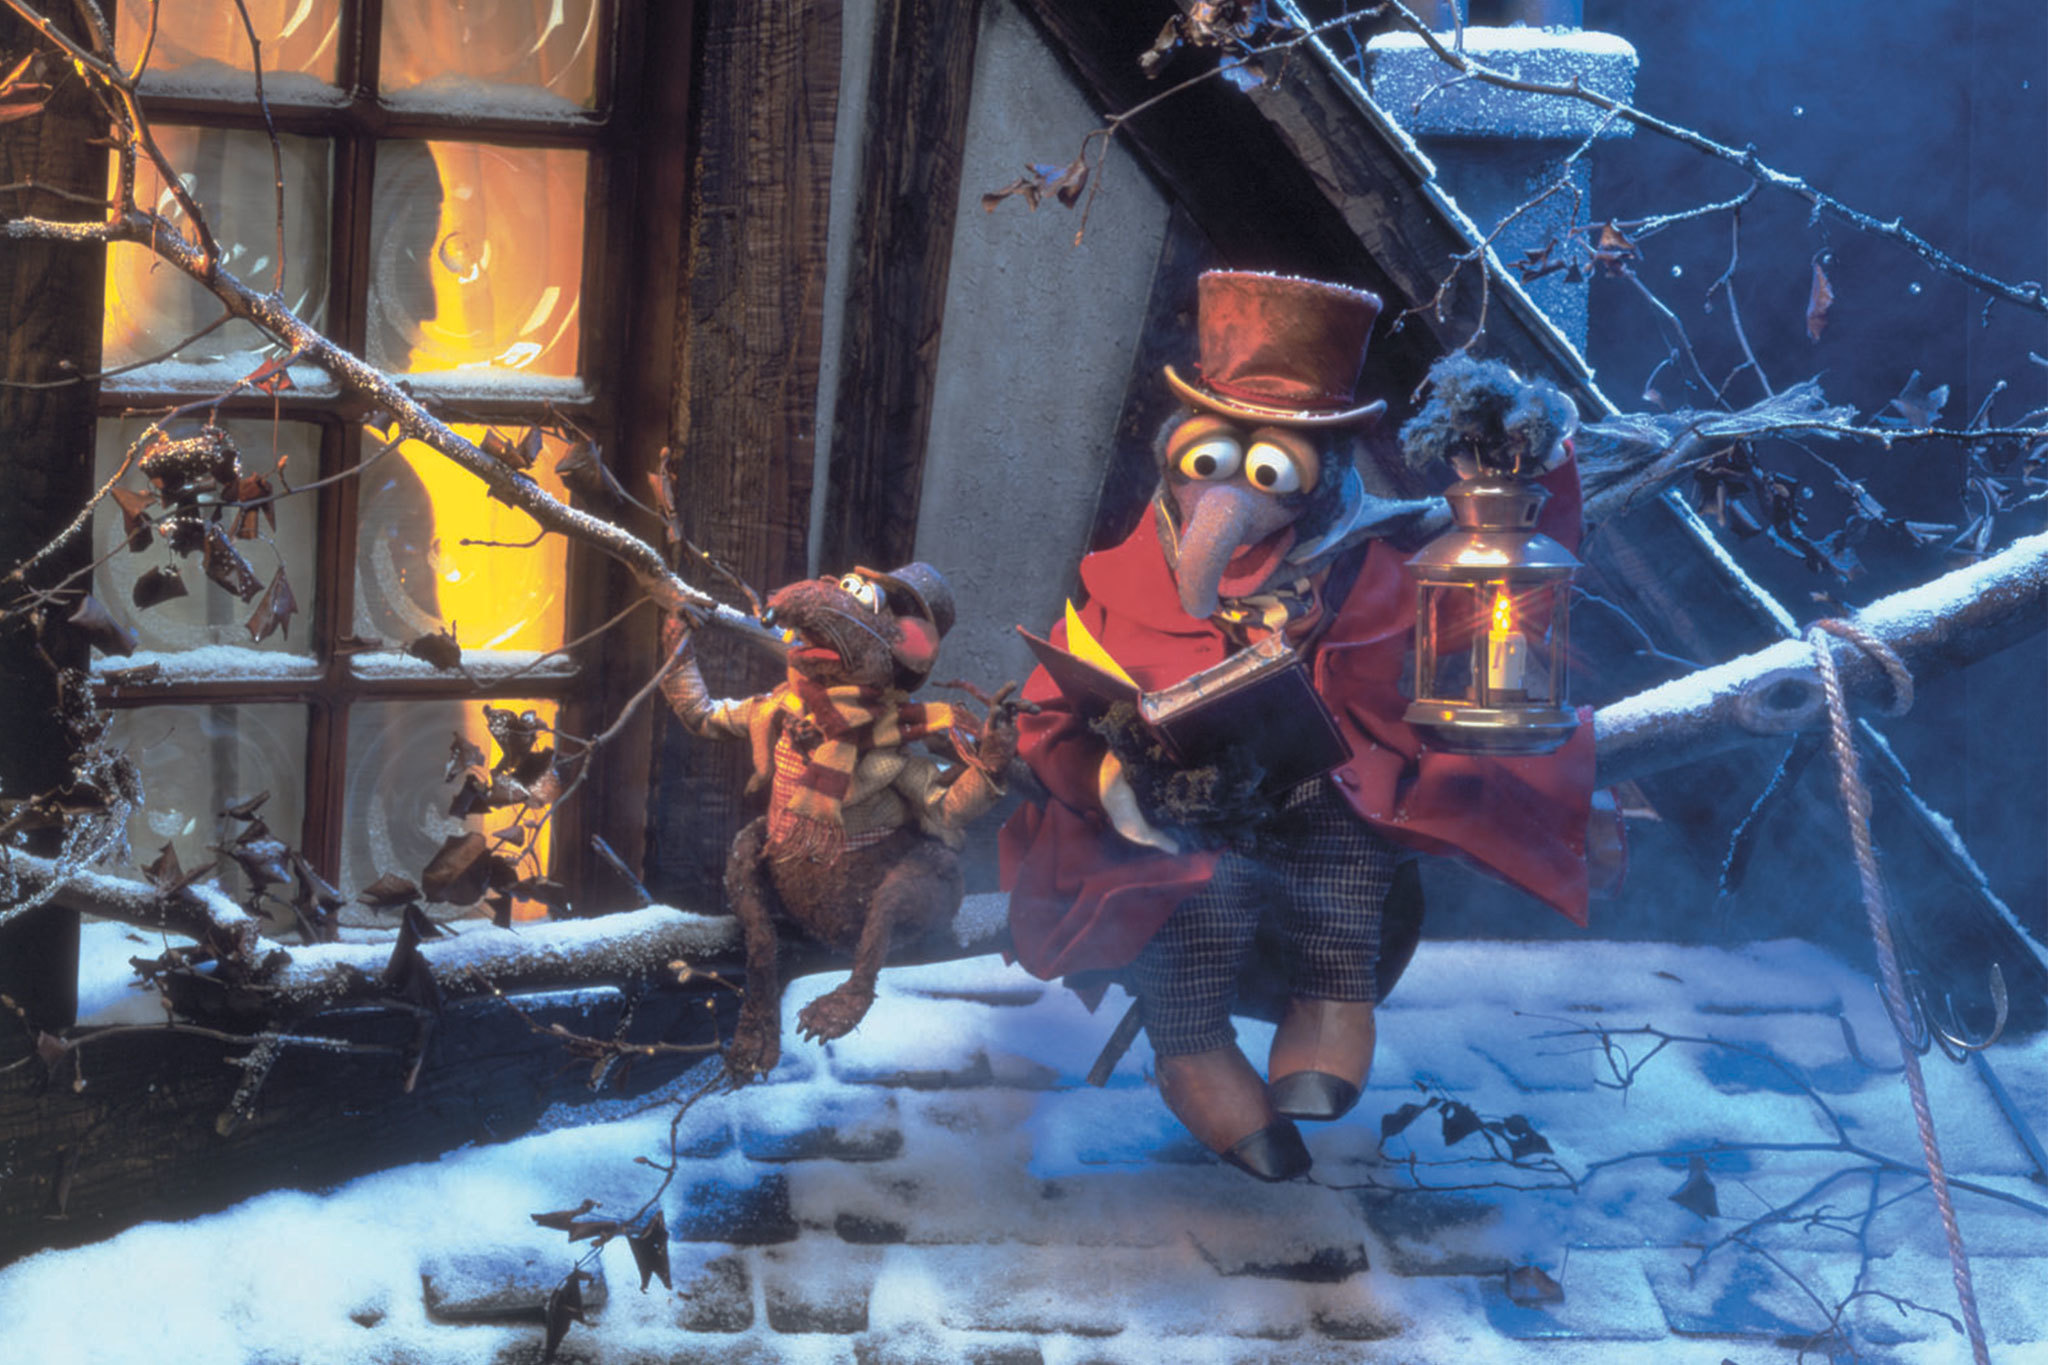 muppet christmas carol best christmas movies - Best Christmas Carol Movie